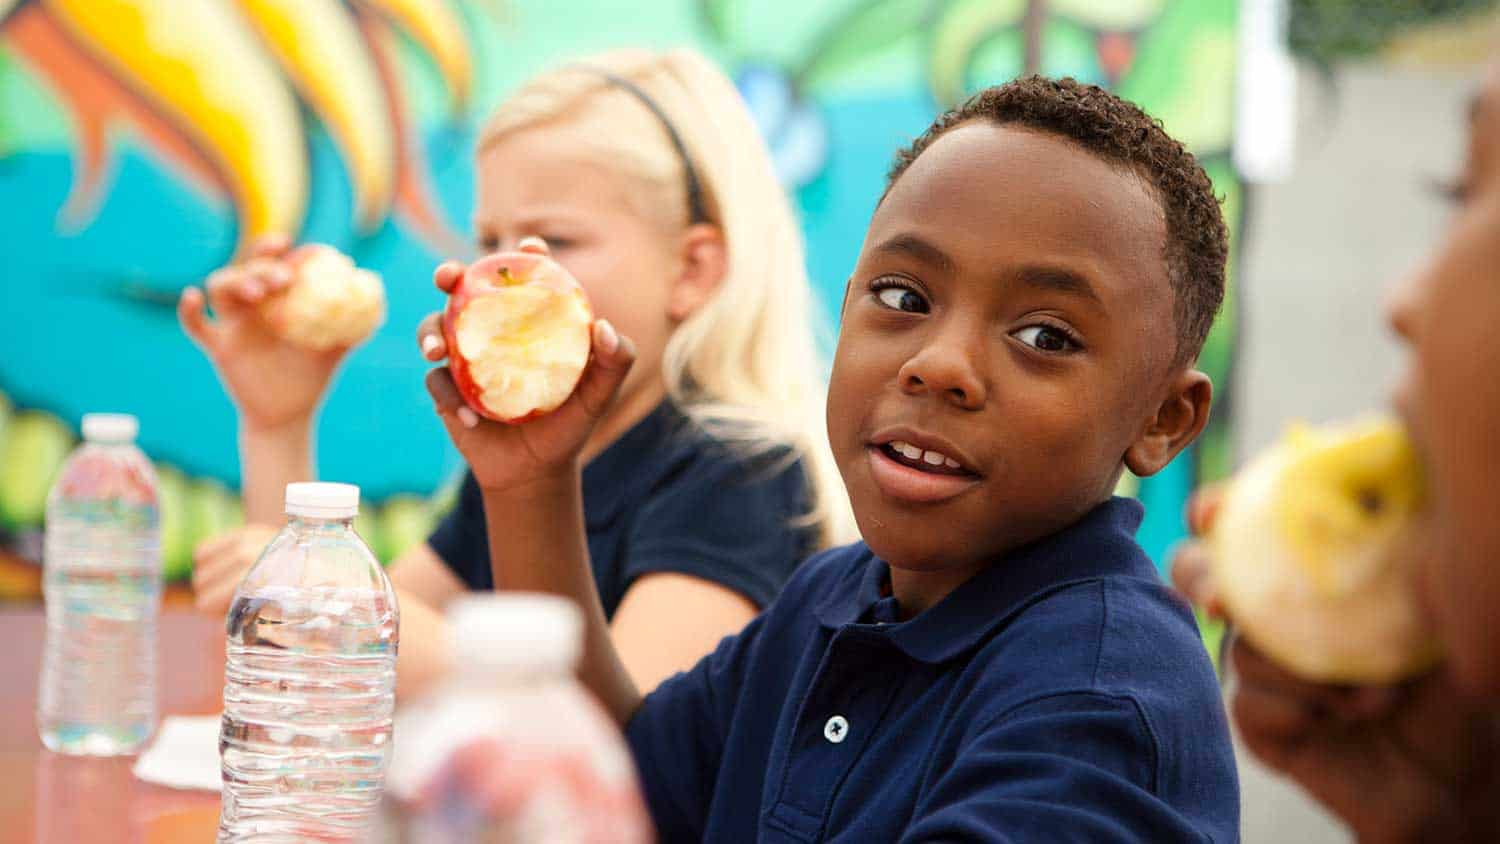 A young boy eating an apple as part of his packed lunch at school.